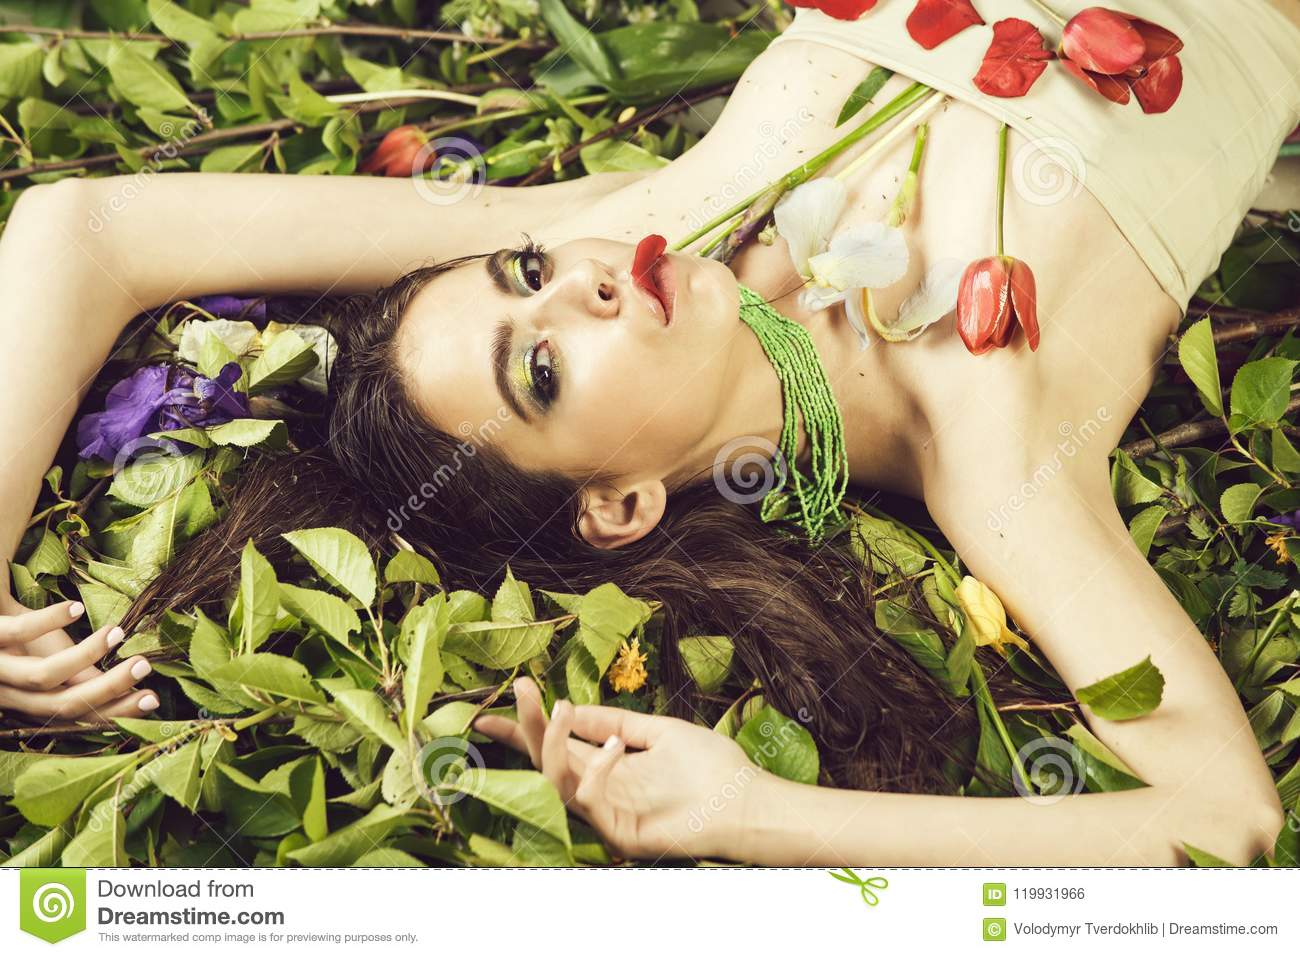 Summer Make Up. woman with fashionable makeup with flowers on green leaves